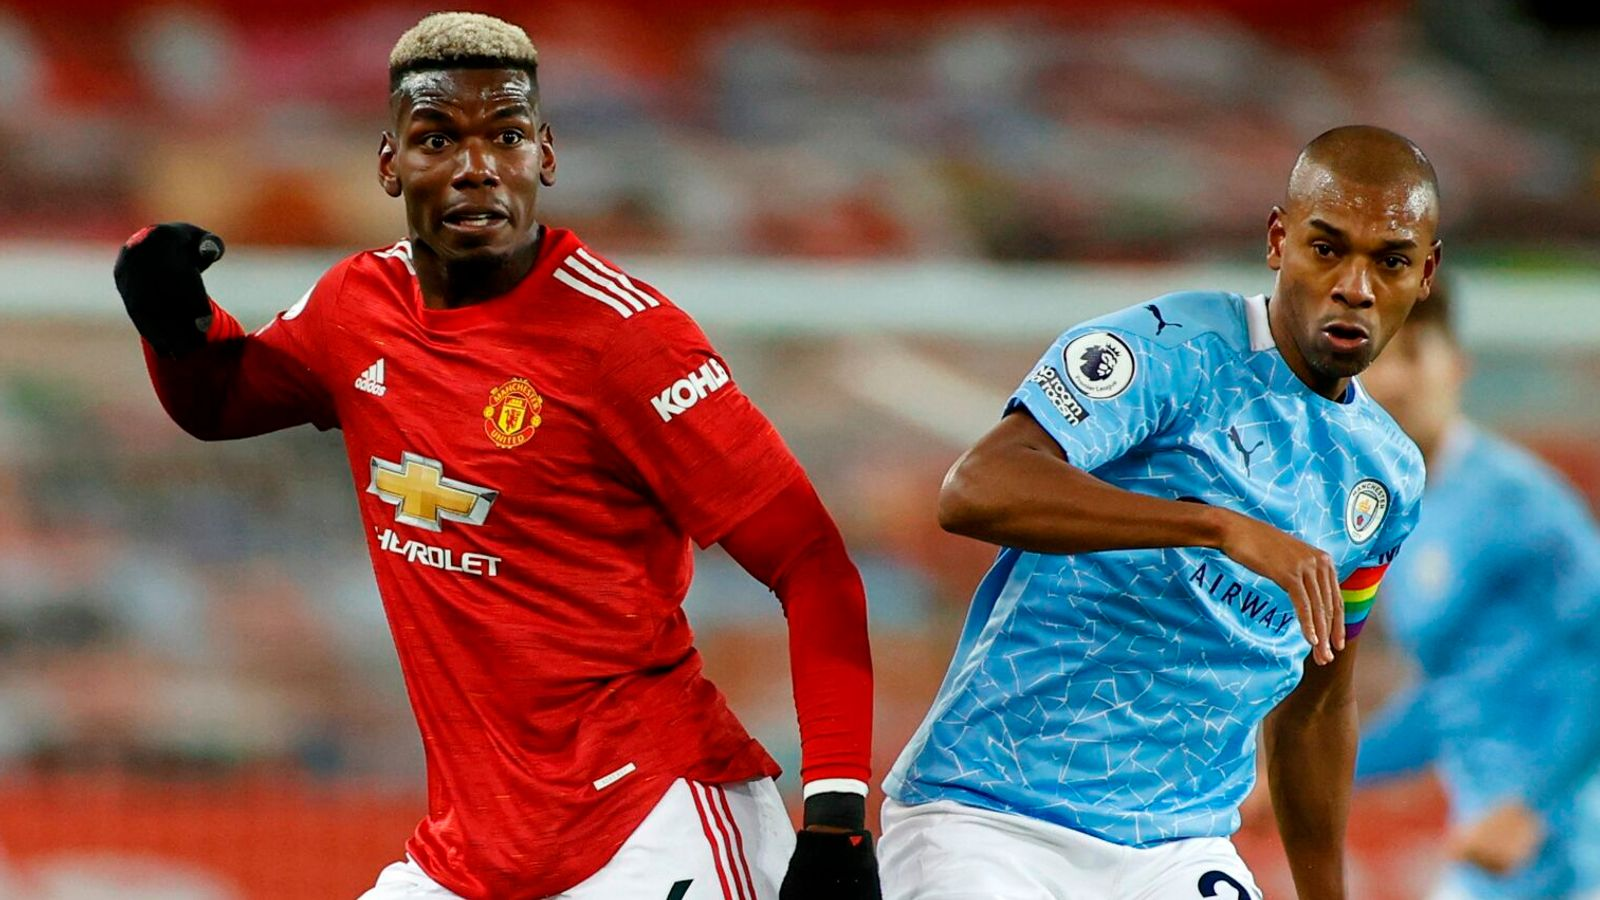 Carabao Cup: Manchester United host Manchester City in the semi-finals;  The Spurs take over Brentford  Football News